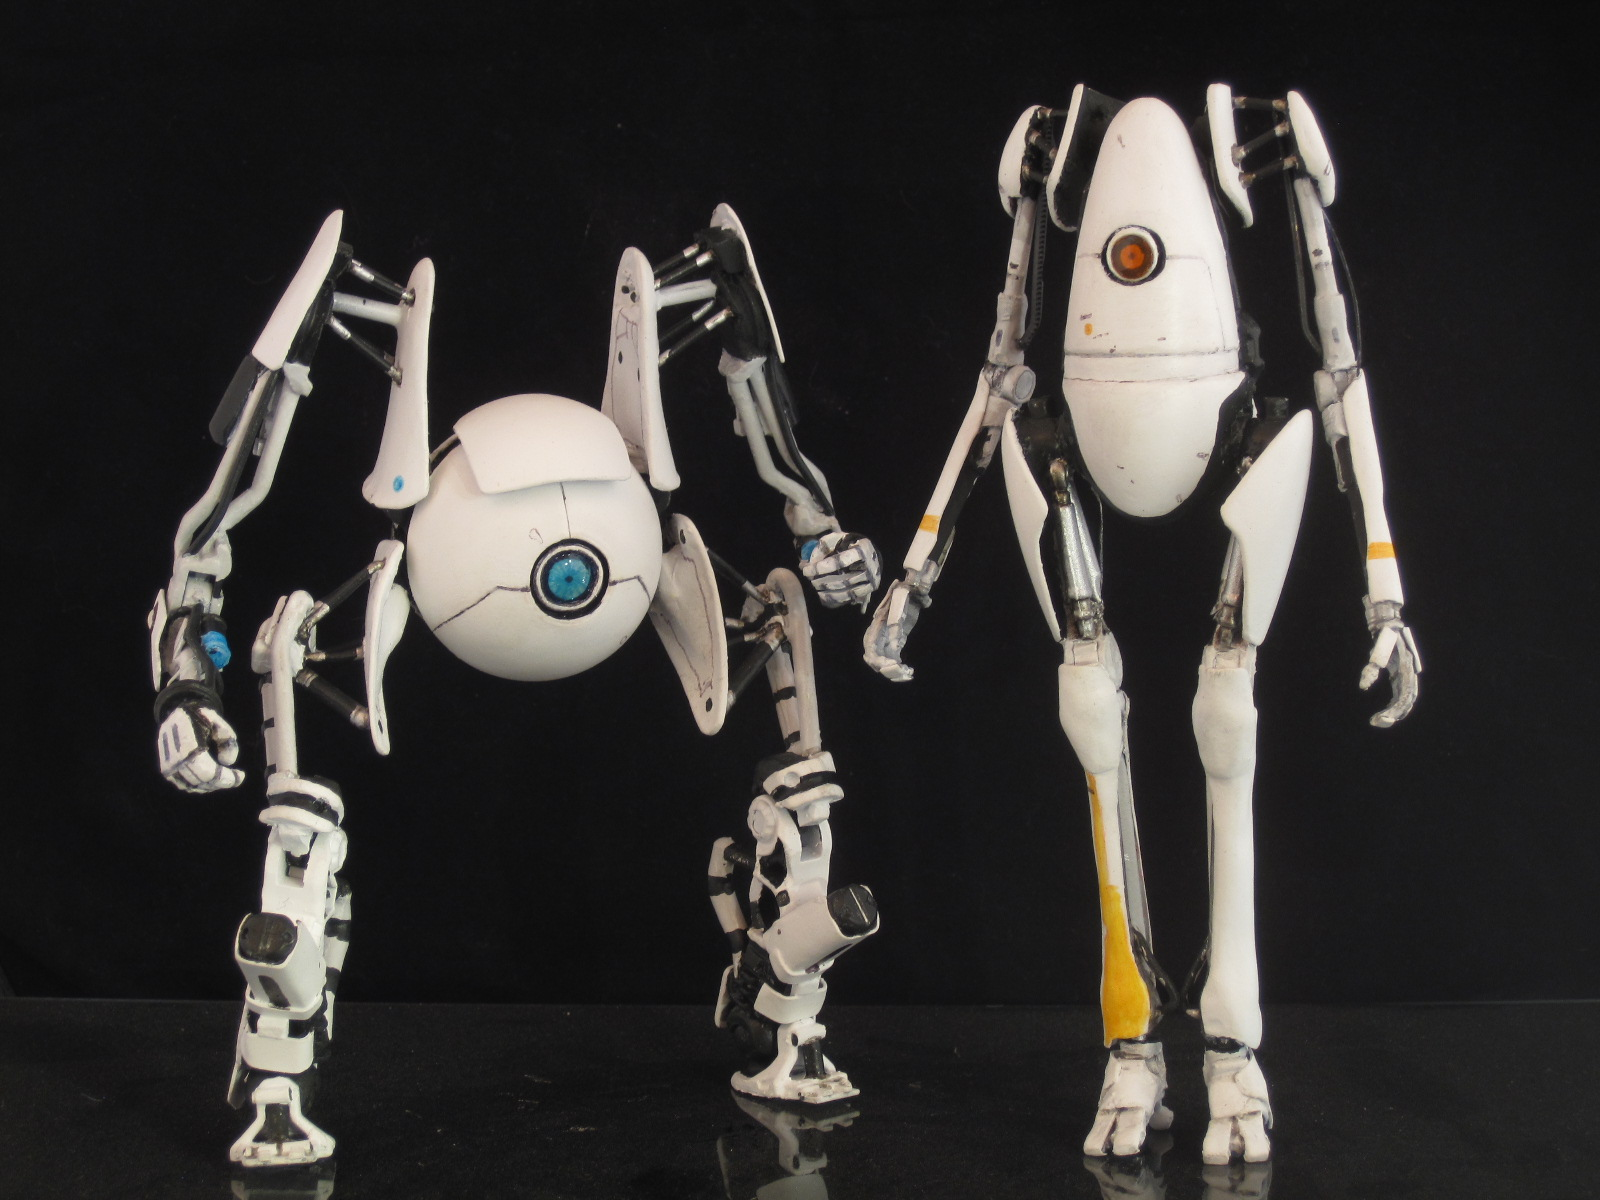 portal 2 robots p body and atlas custom action figure toys wip sabretooth 39 s workshop. Black Bedroom Furniture Sets. Home Design Ideas